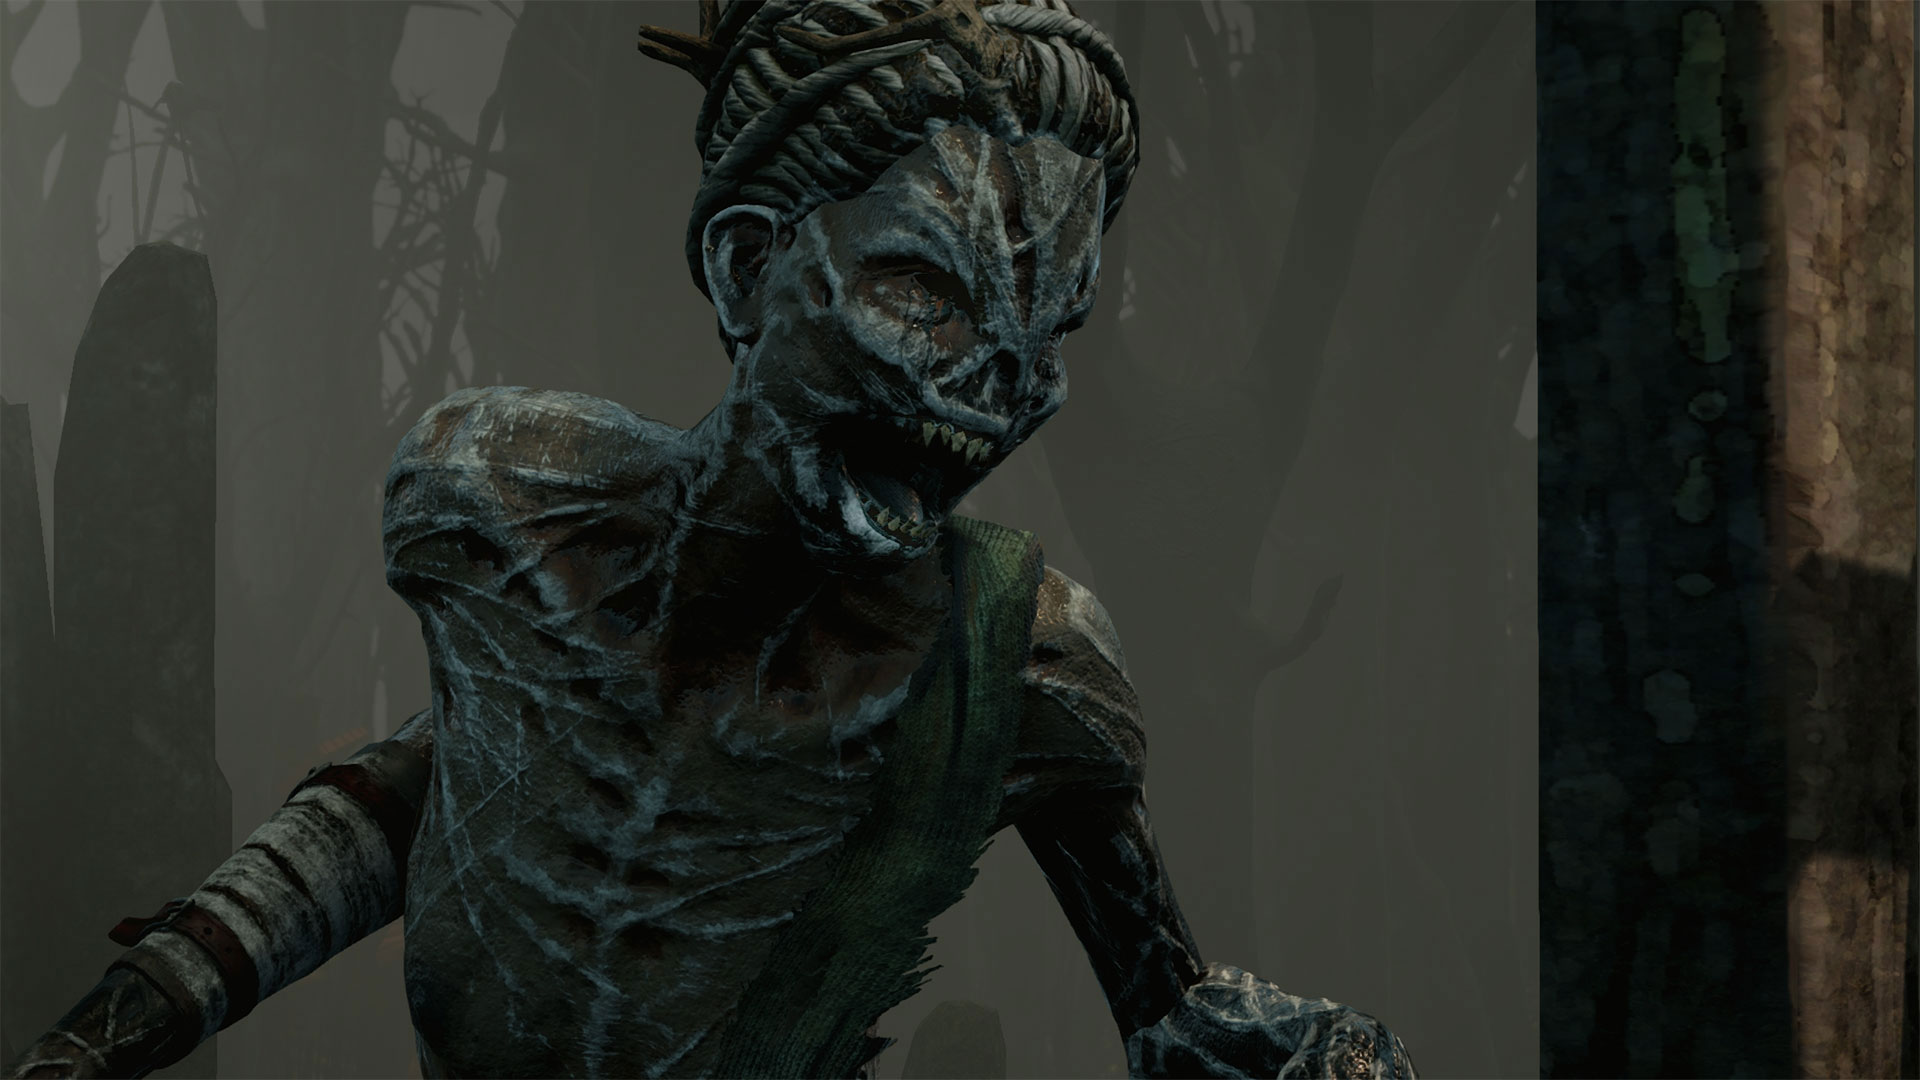 The Hag, one of the most terrifying of the Dead by Daylight killers